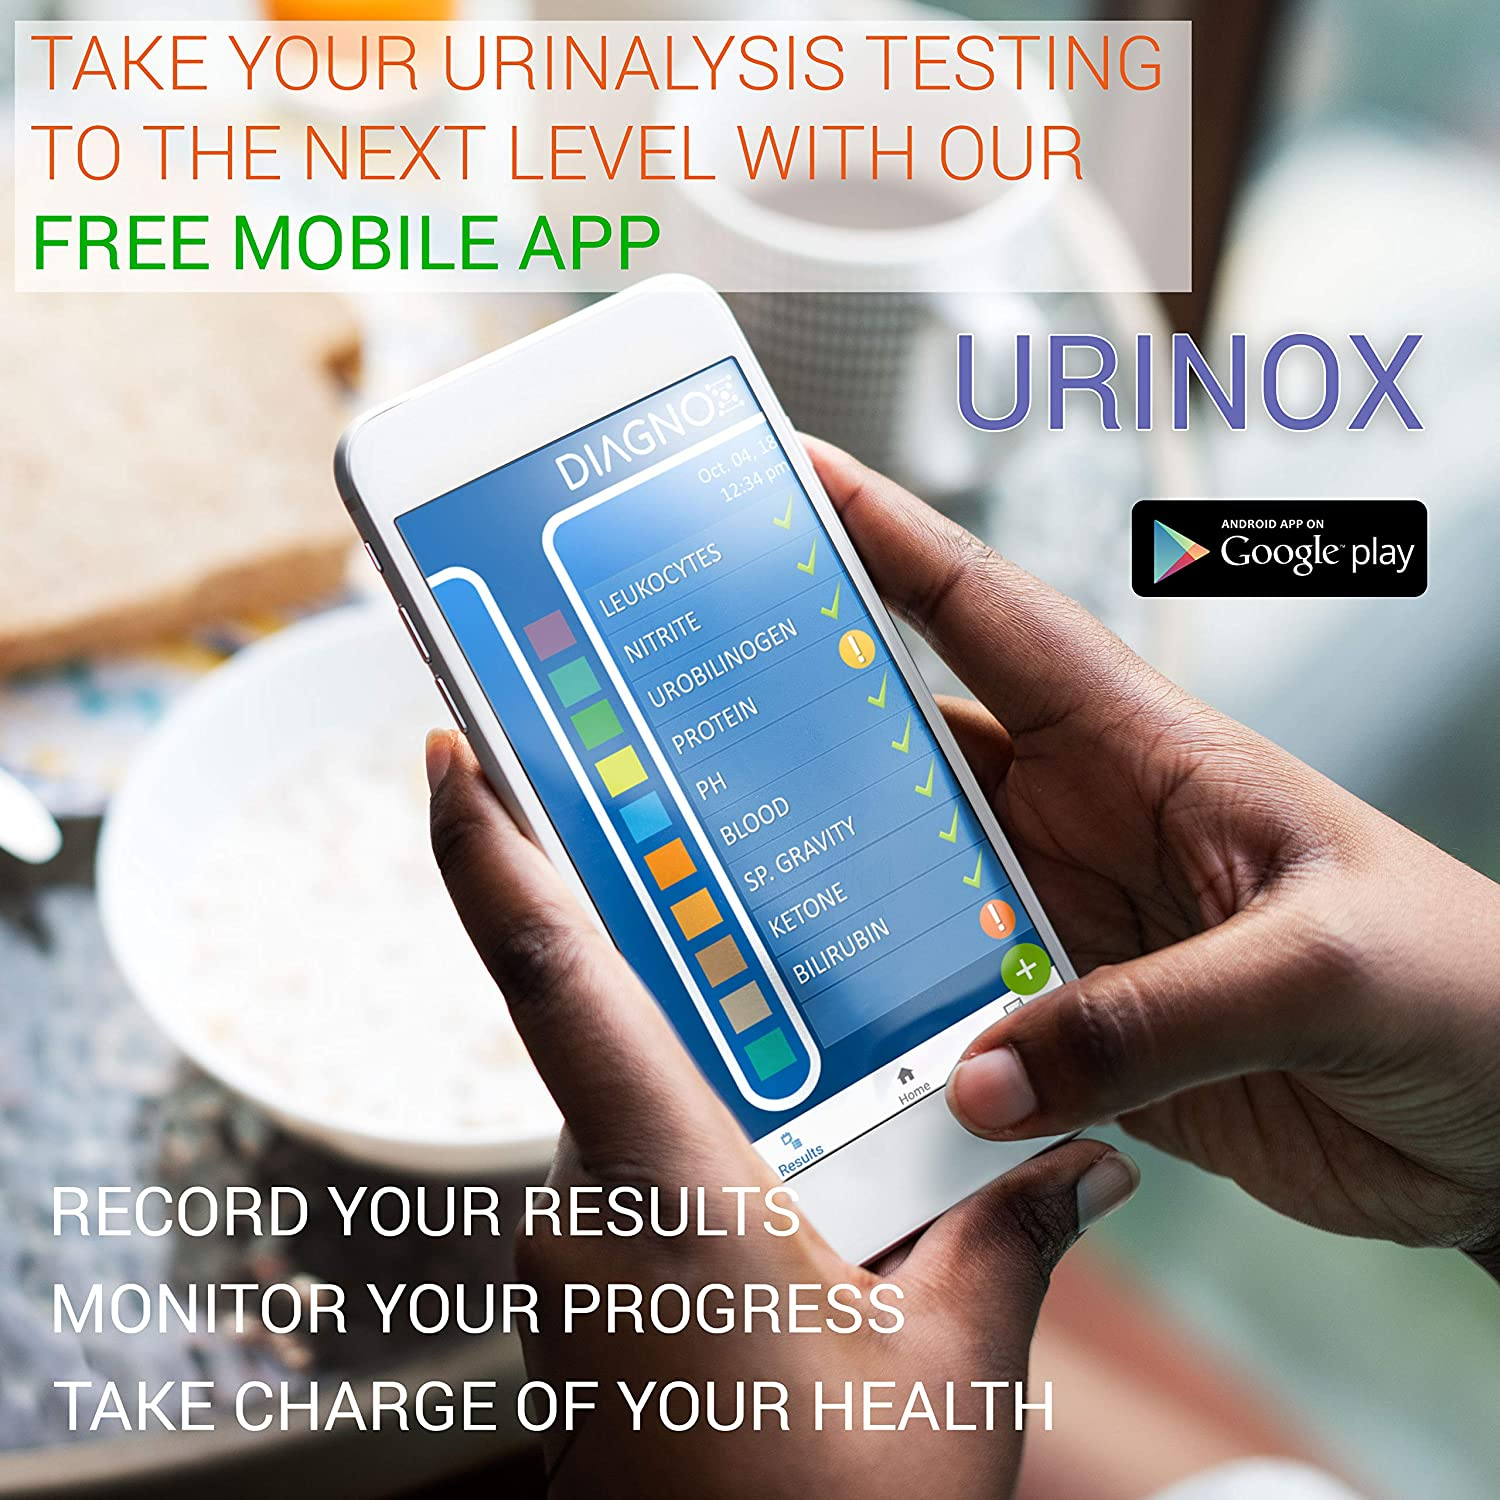 Multi-Parameter Urine Test Strip for Urinary Tract Infection UTI   Individually Packed, Clinically Tested with Mobile App   Medical Grade Urinalysis at Home   20 Pack: Industrial & Scientific